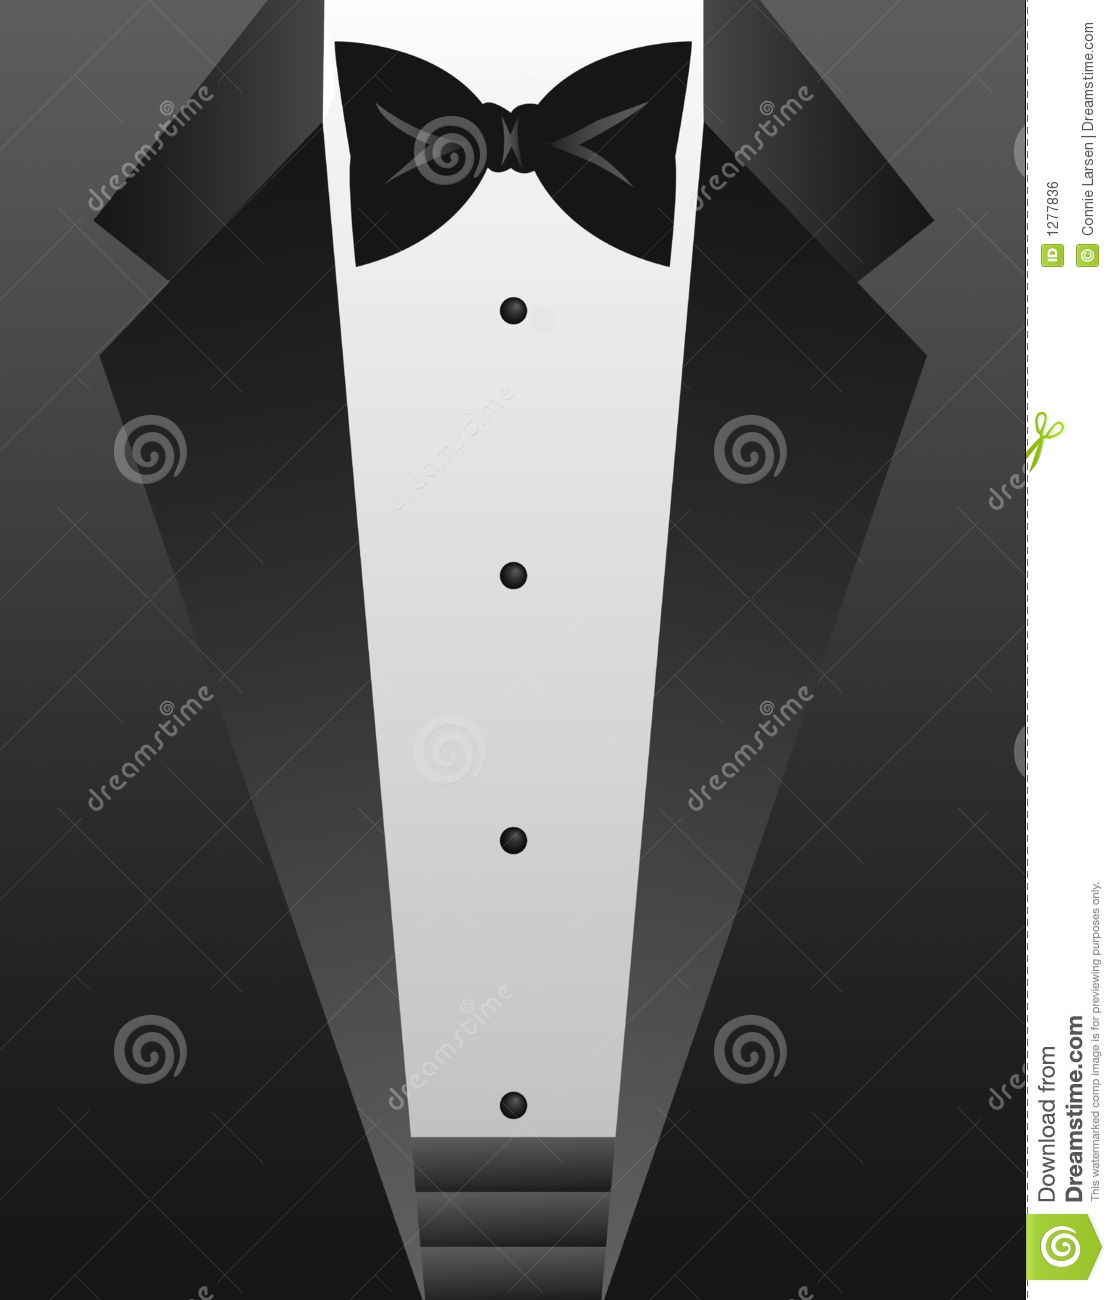 Formal Attire Black Bow Tie And Tuxedo Jacket   Eps File Available